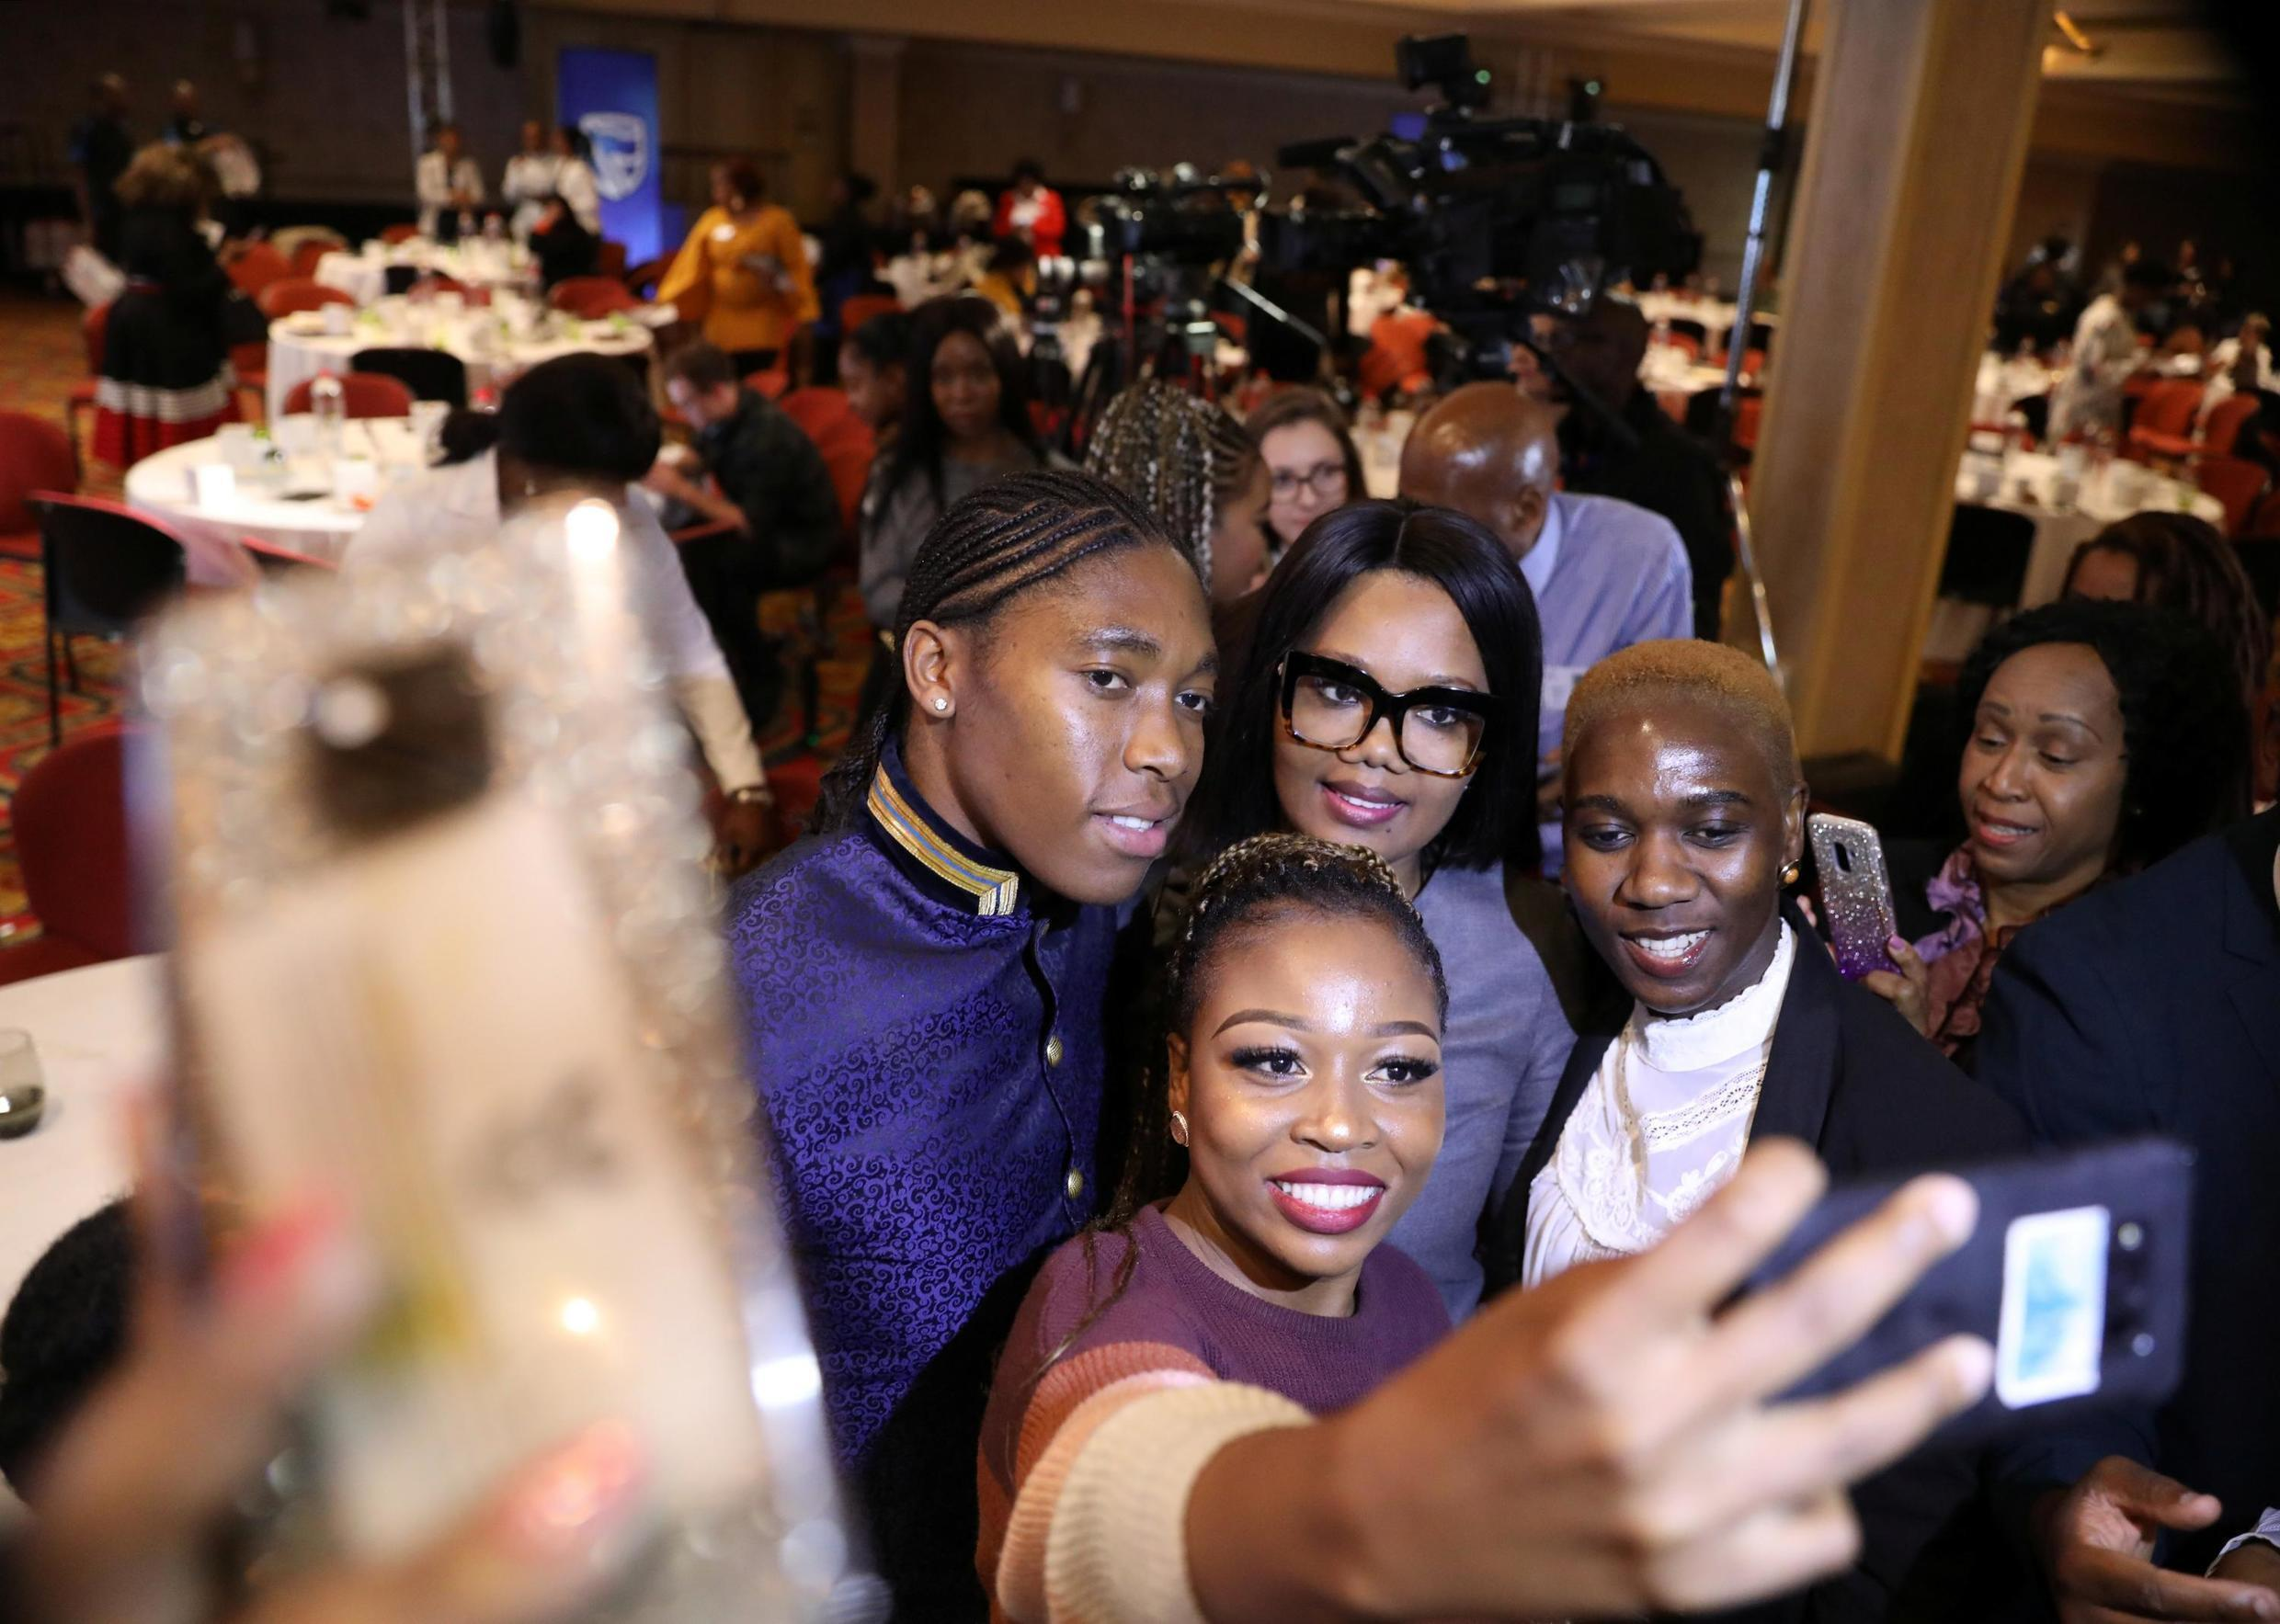 South African athlete Caster Semenya takes selfies with fans at a the Top Women conference in Johannesburg, South Africa 14 August 2019.